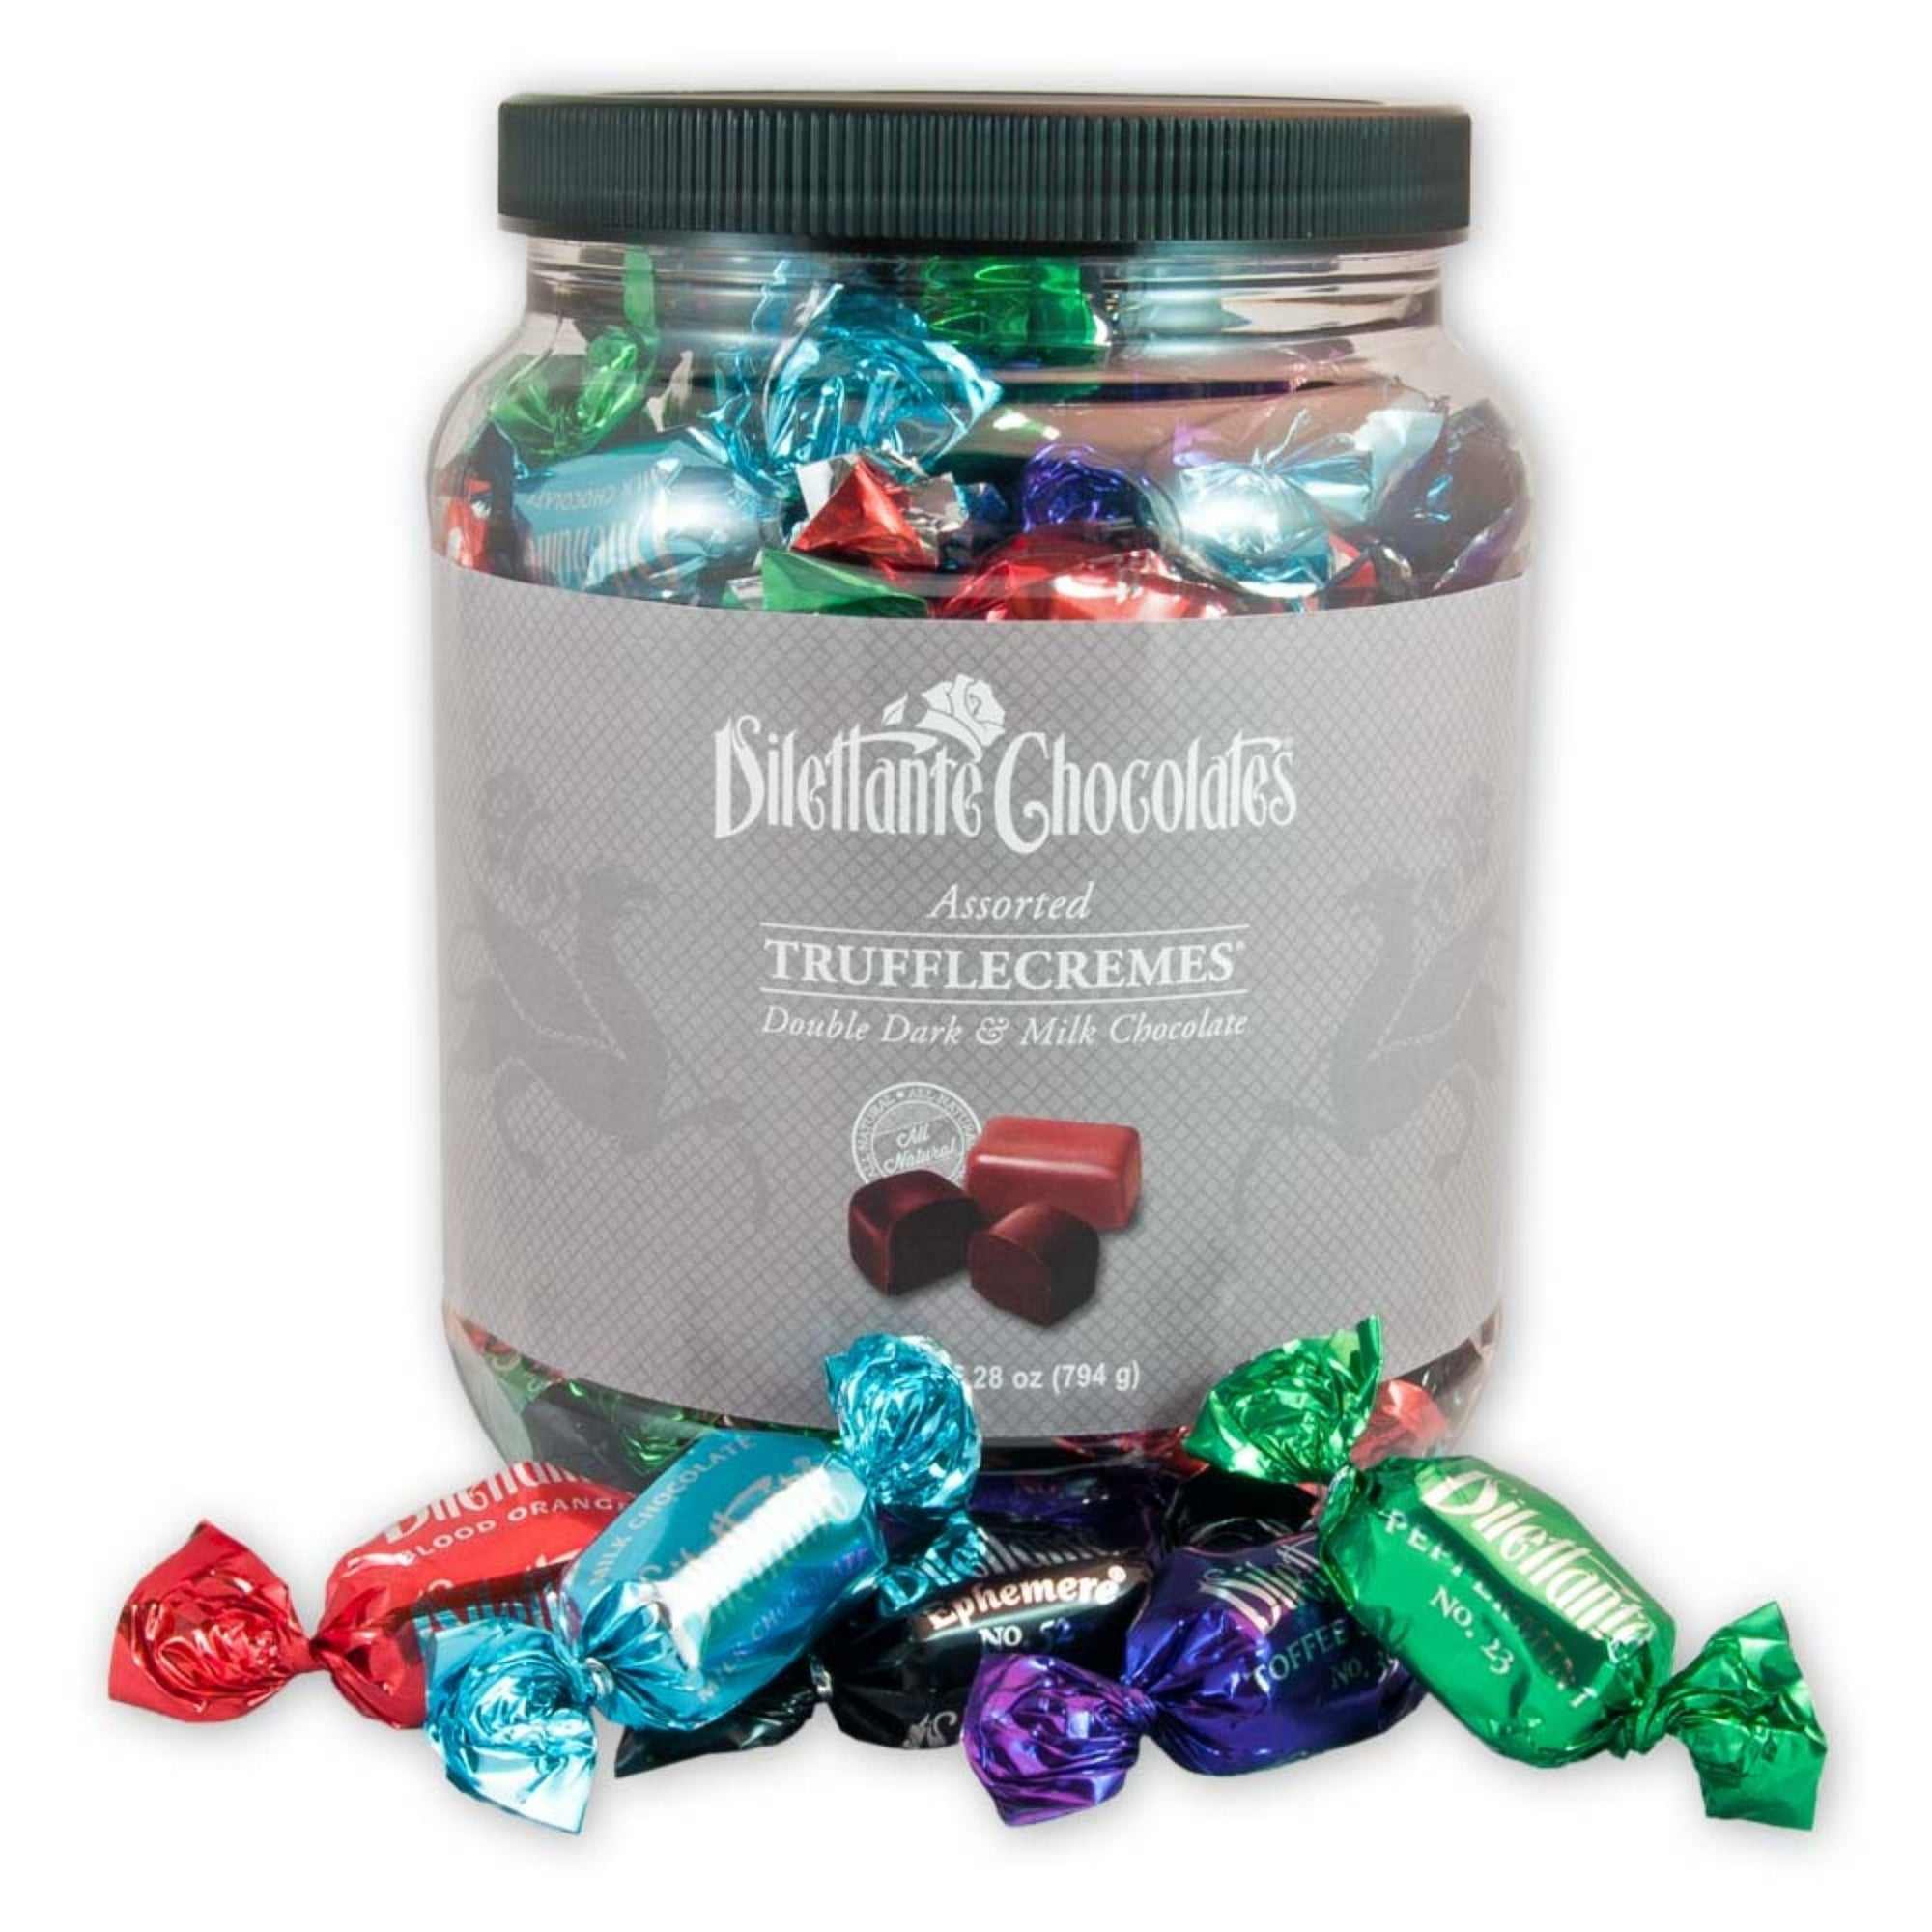 Dilettante Chocolates Assorted TruffleCremes 28-Ounce Jar Featuring Peppermint, Toffee Crunch, Dark Ephemere, Light Ephemere, and Blood Orange